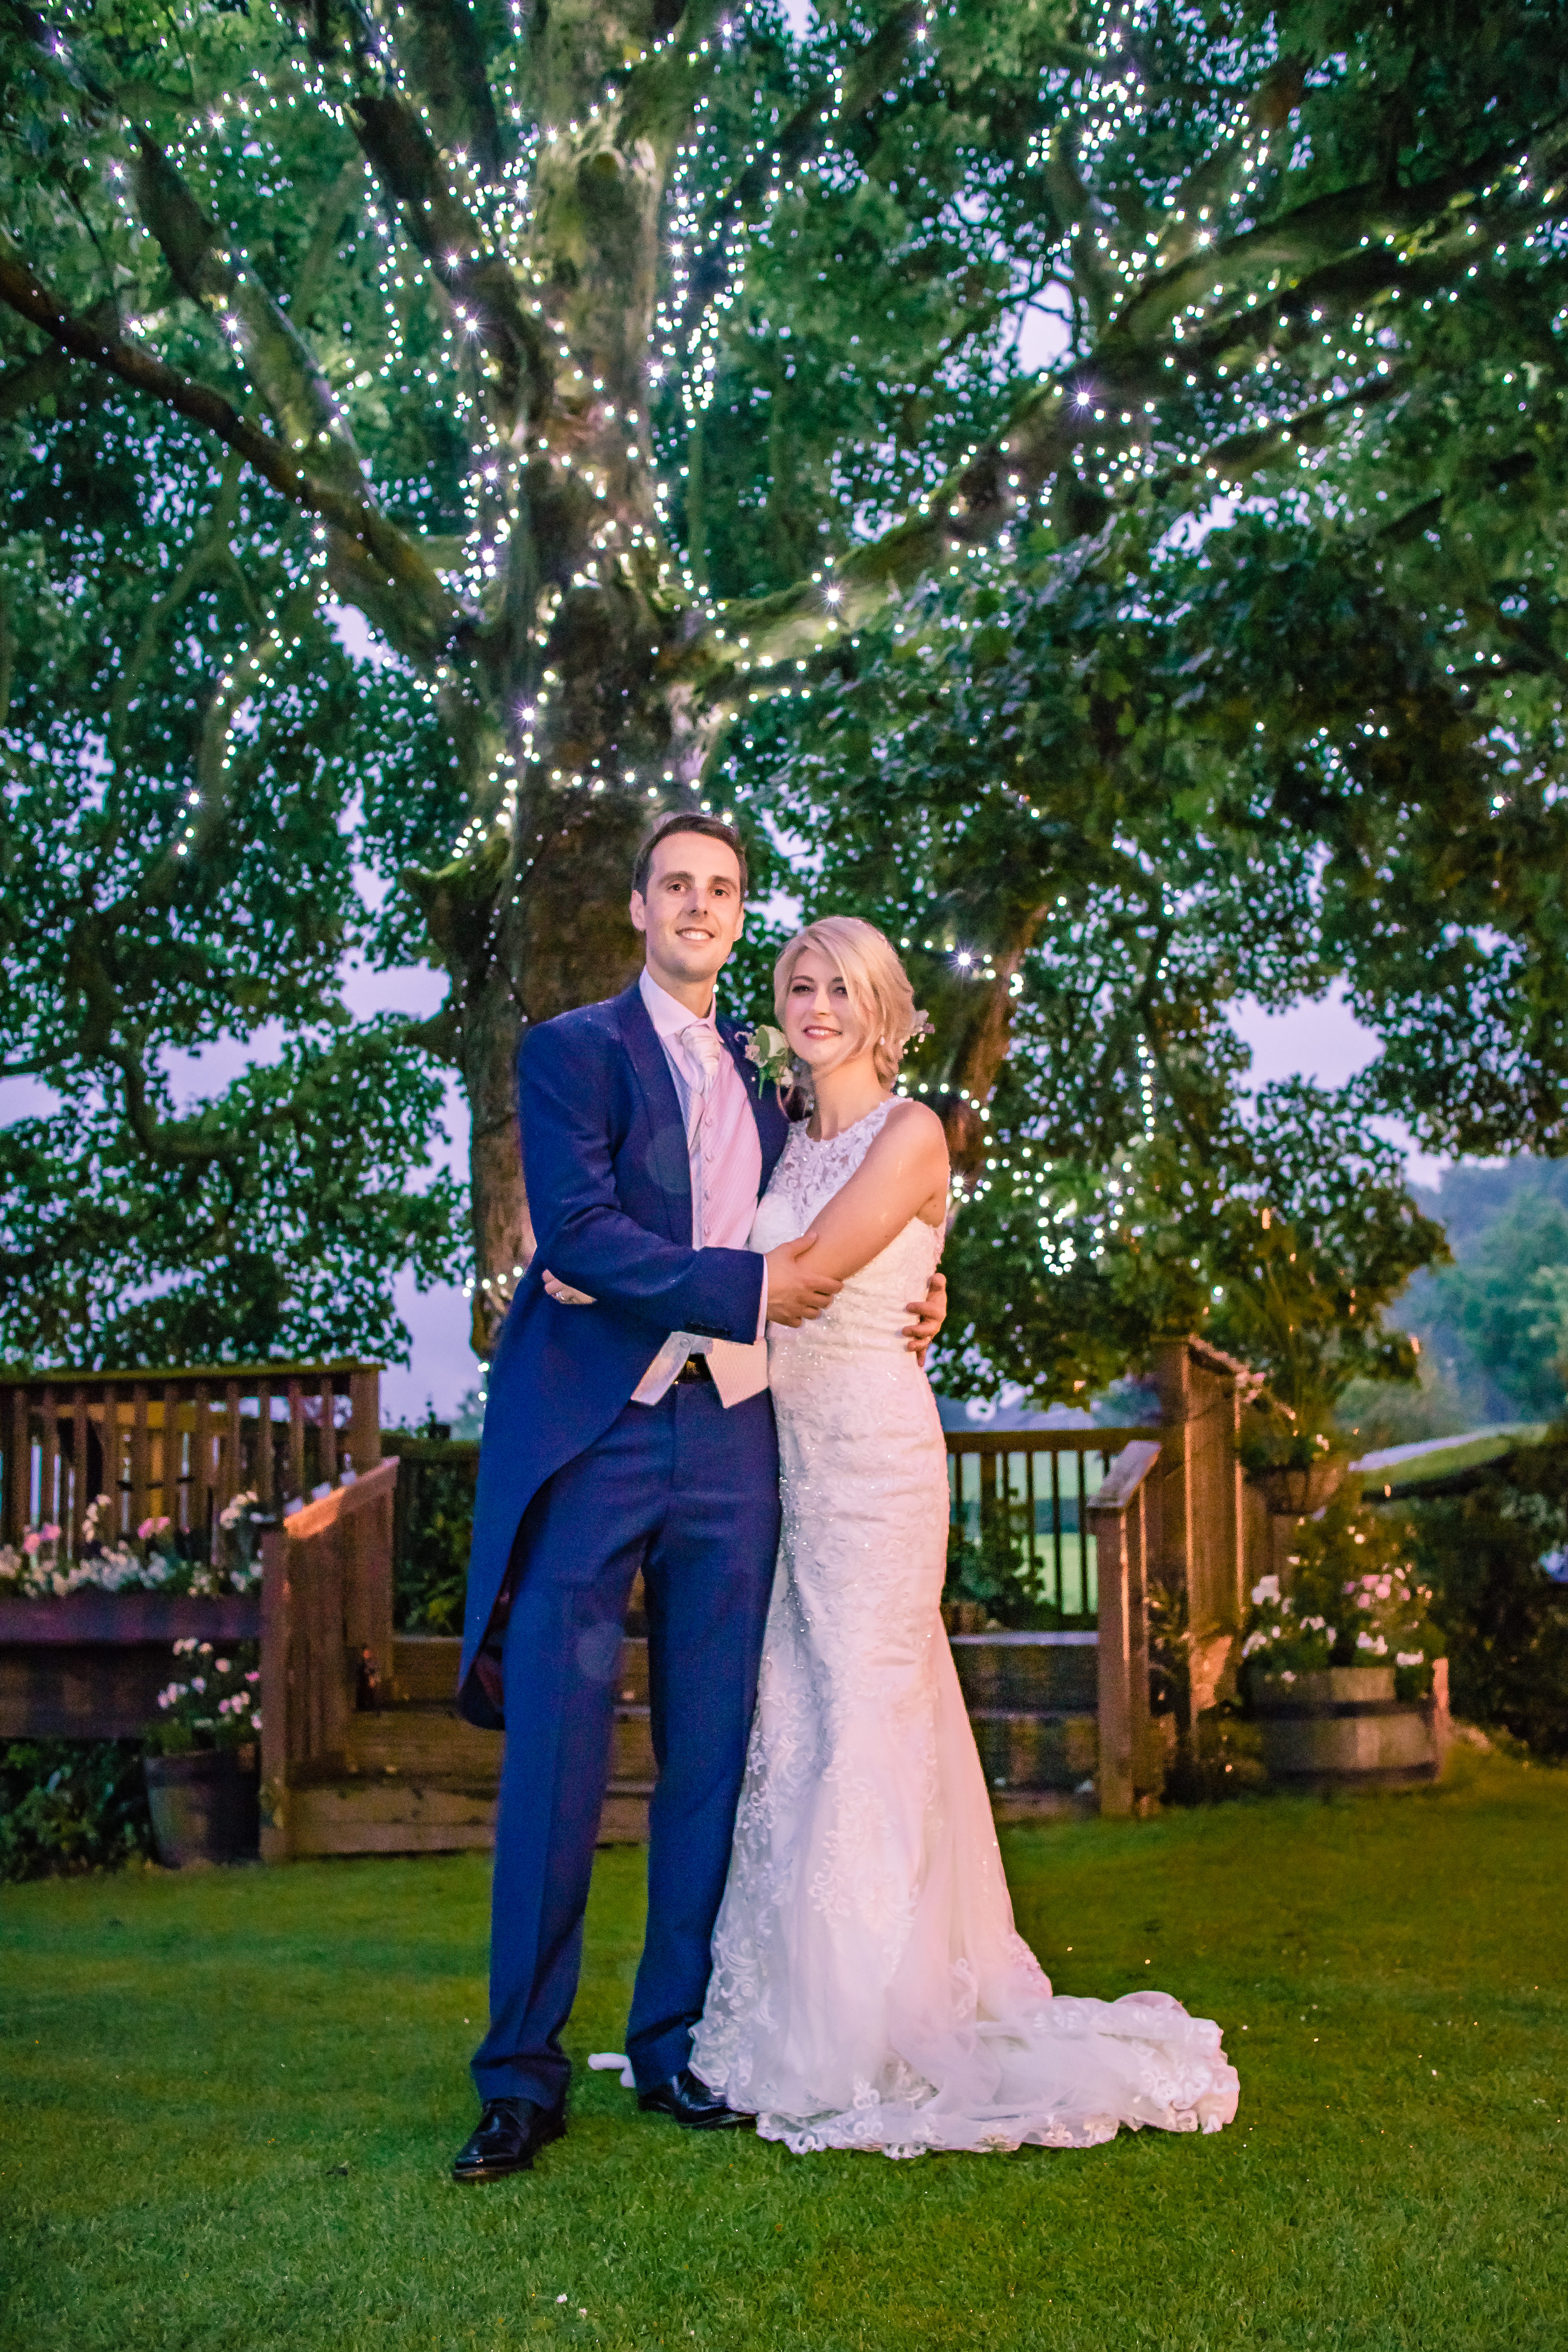 Bride & groom pose under a tree